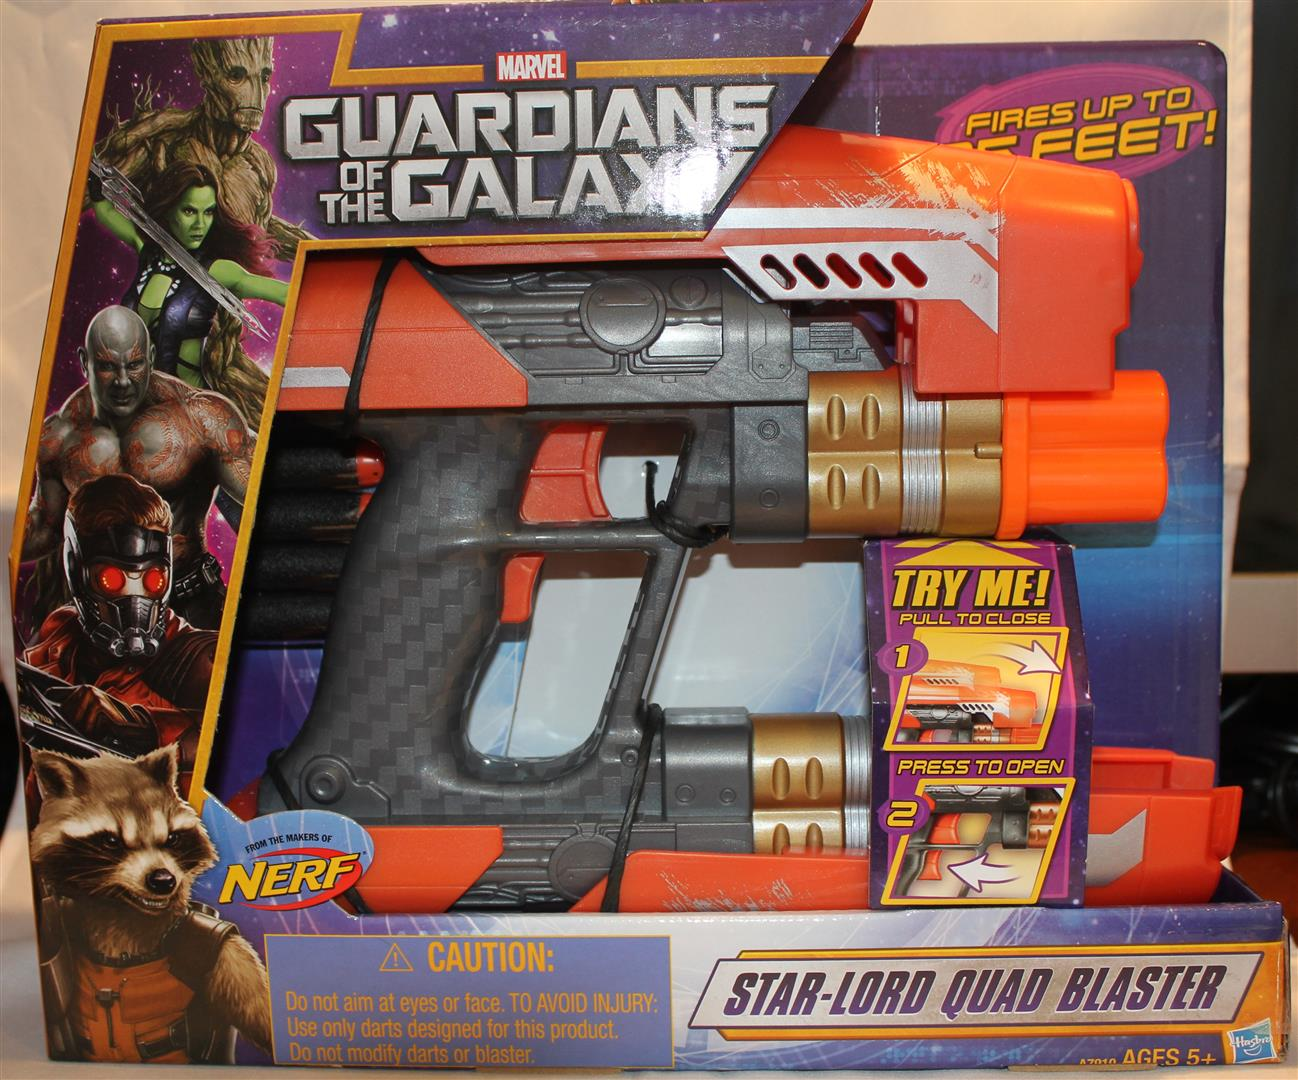 Toy Island Toys Guardians Of The Galaxy Star Lord Quad Blaster Mureview